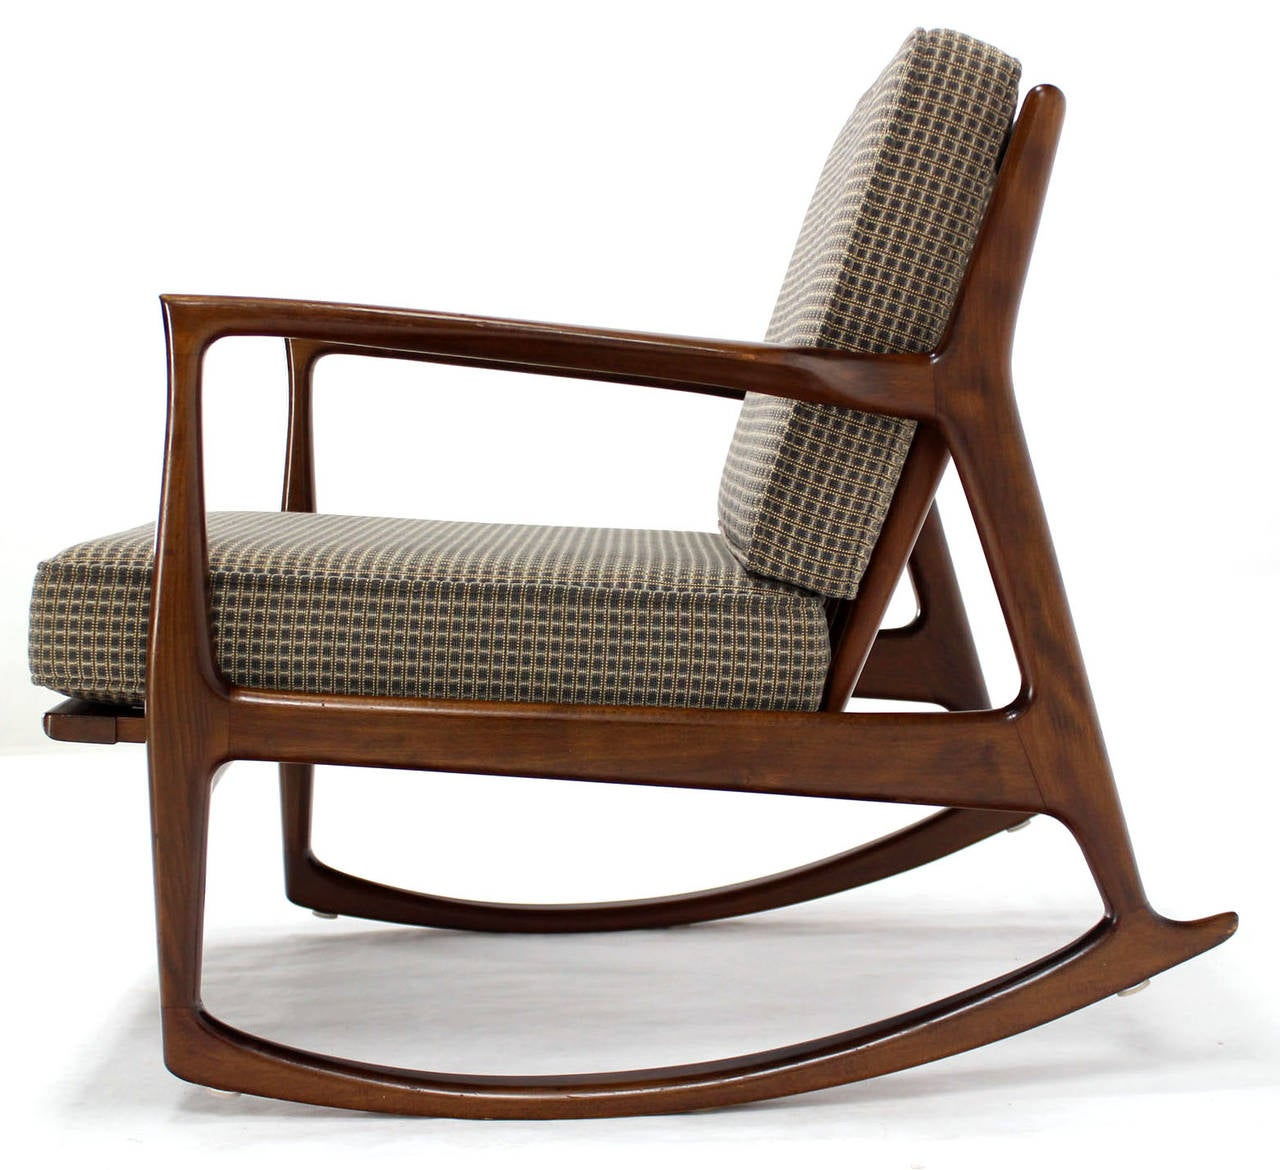 danish modern mid century rocking chair by selig at 1stdibs. Black Bedroom Furniture Sets. Home Design Ideas